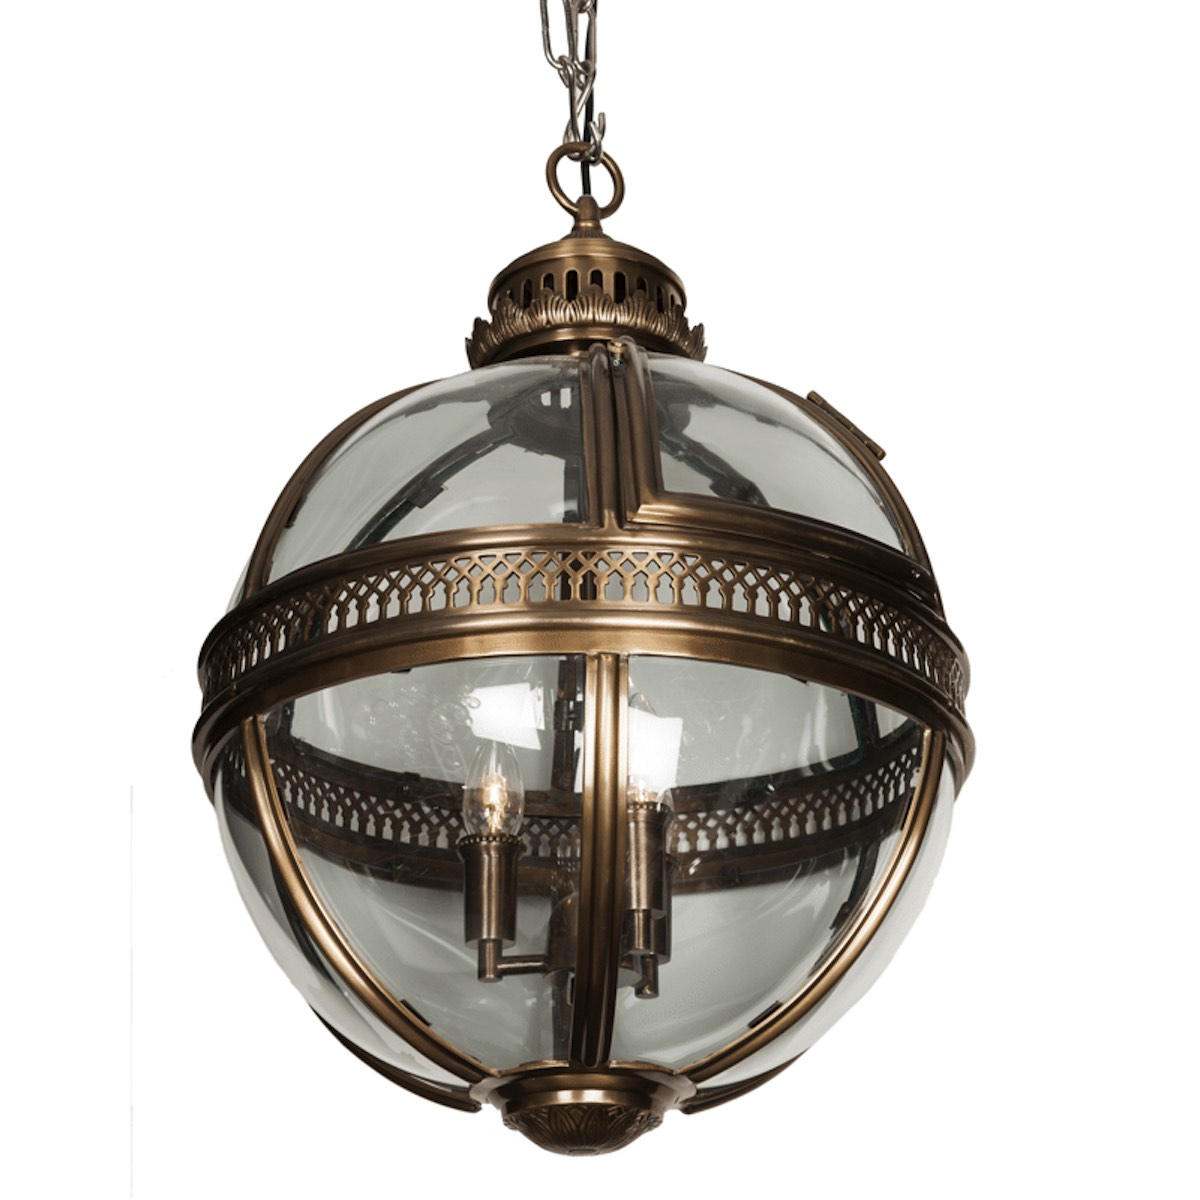 antique-brass-lantern.jpg